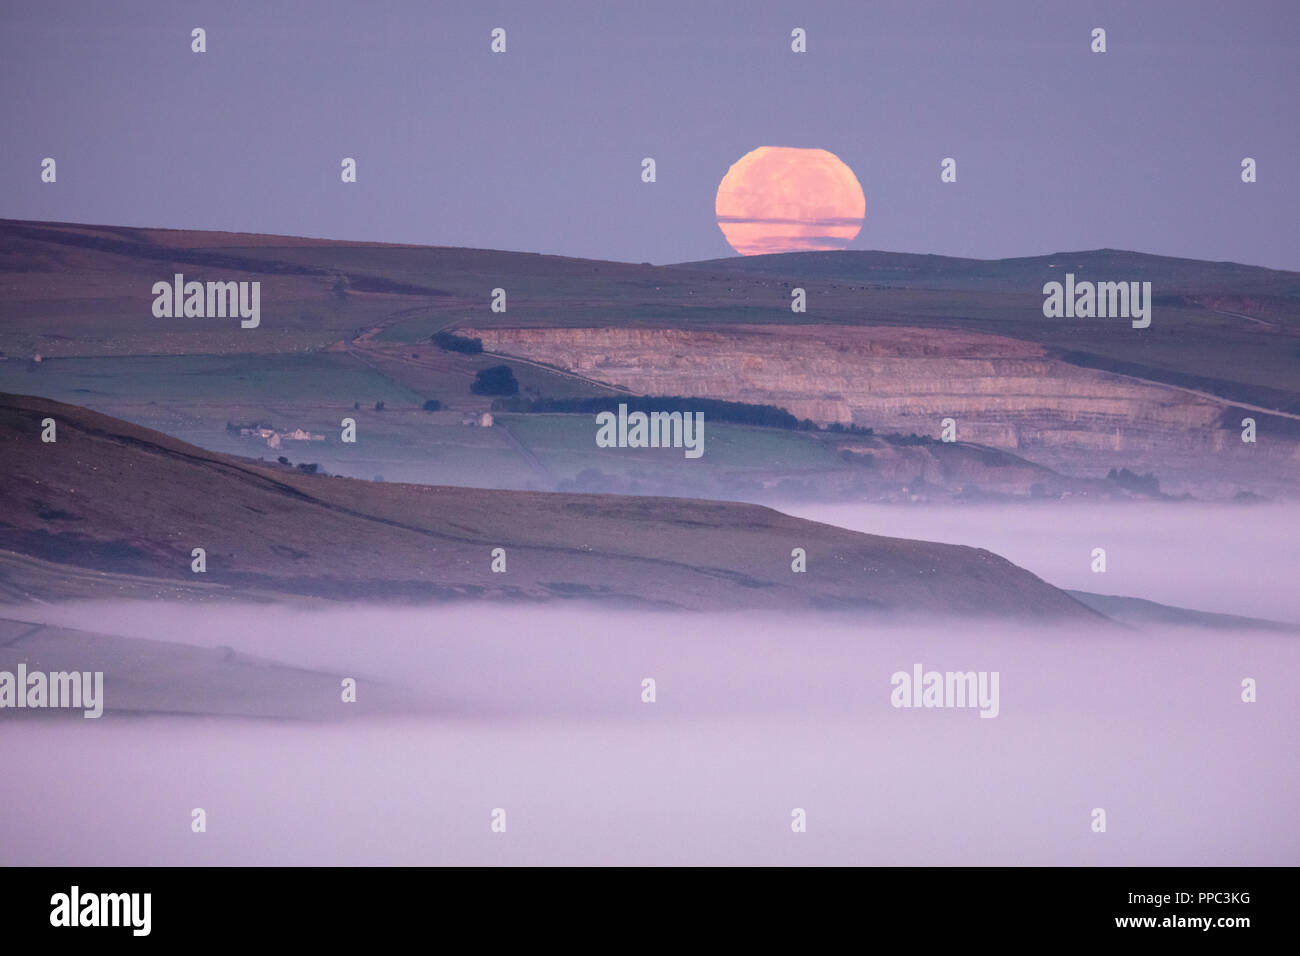 Hope Valley, Derbyshire, UK. 25th Sep 2018. The Full Moon sets over a mist-filled Hope Valley in The Peak District National Park in the early hours of 25th September 2018. Known as the Harvest Moon, the closest full moon to the Autumnal Equinox, it picks up an orange tinge from the sun rising in the opposite side of the sky. Credit: Graham Dunn/Alamy Live News - Stock Image